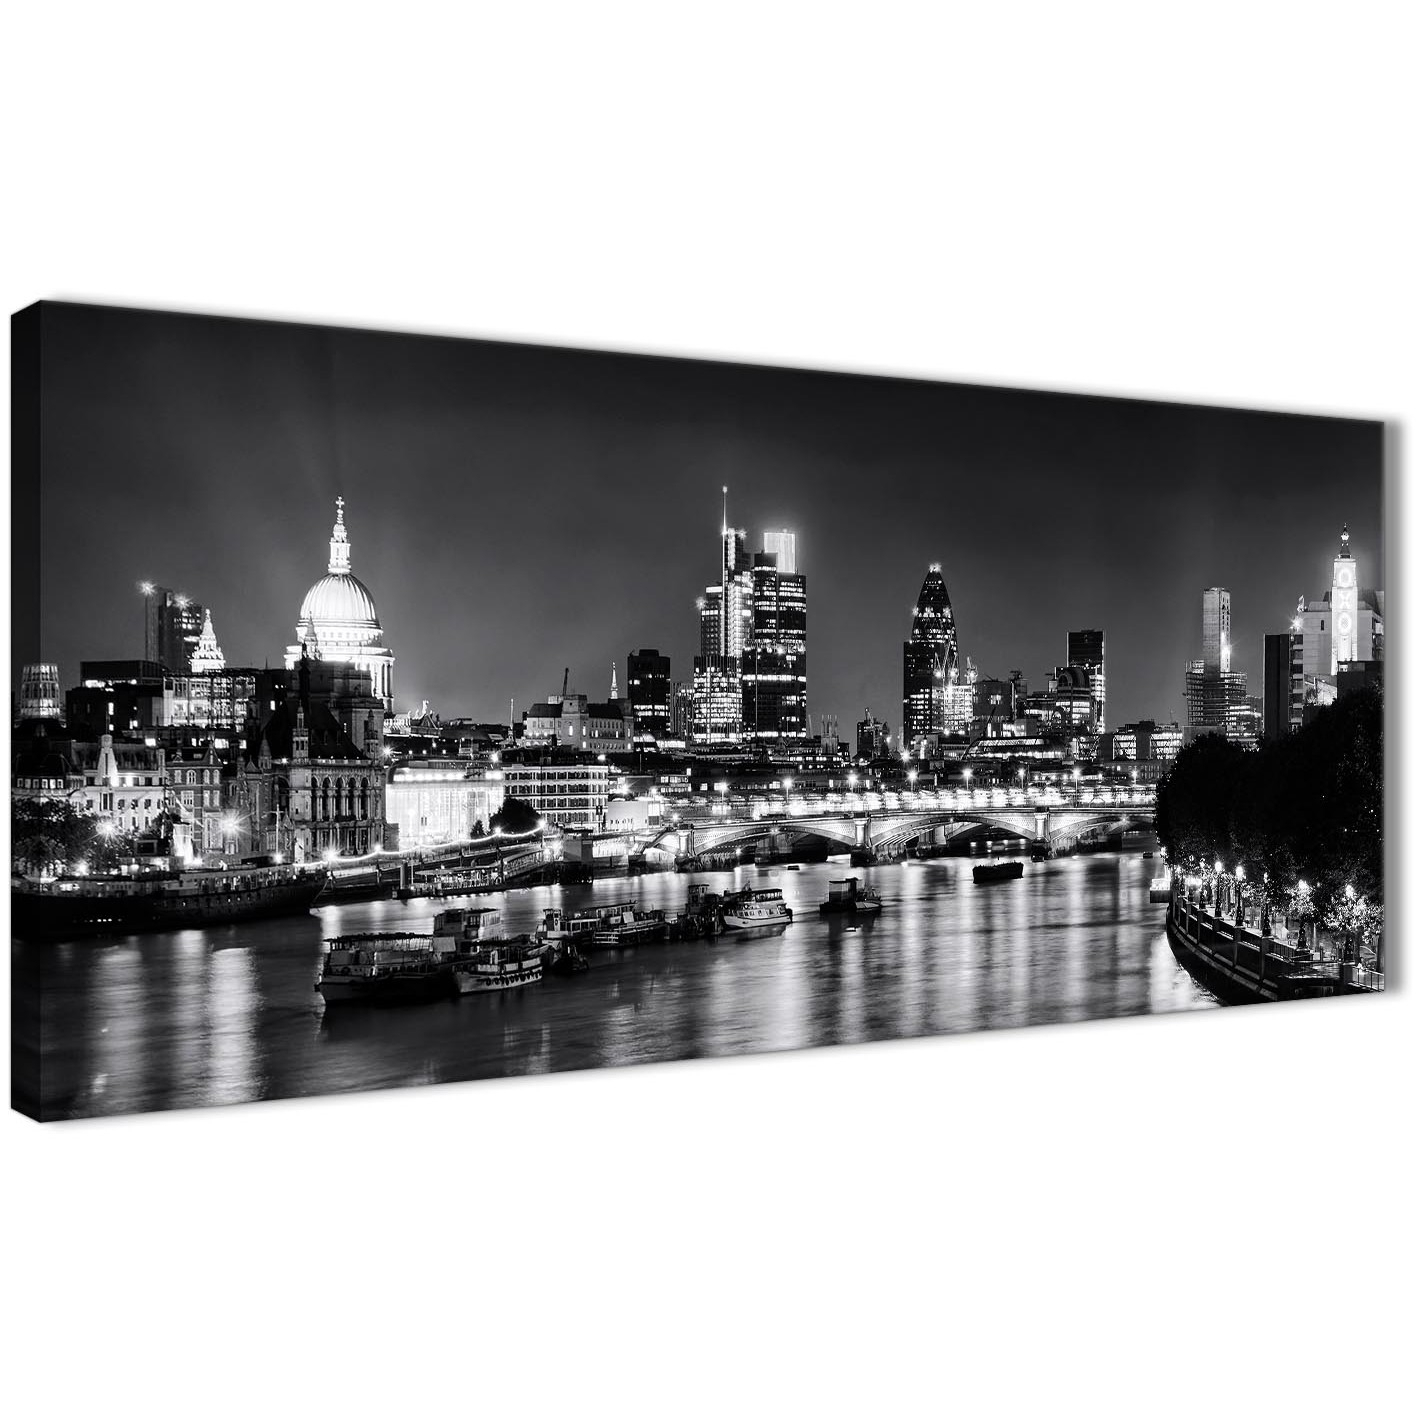 River Thames Skyline Of London Canvas Art Pictures – Landscape Regarding 2017 London Canvas Wall Art (Gallery 13 of 15)